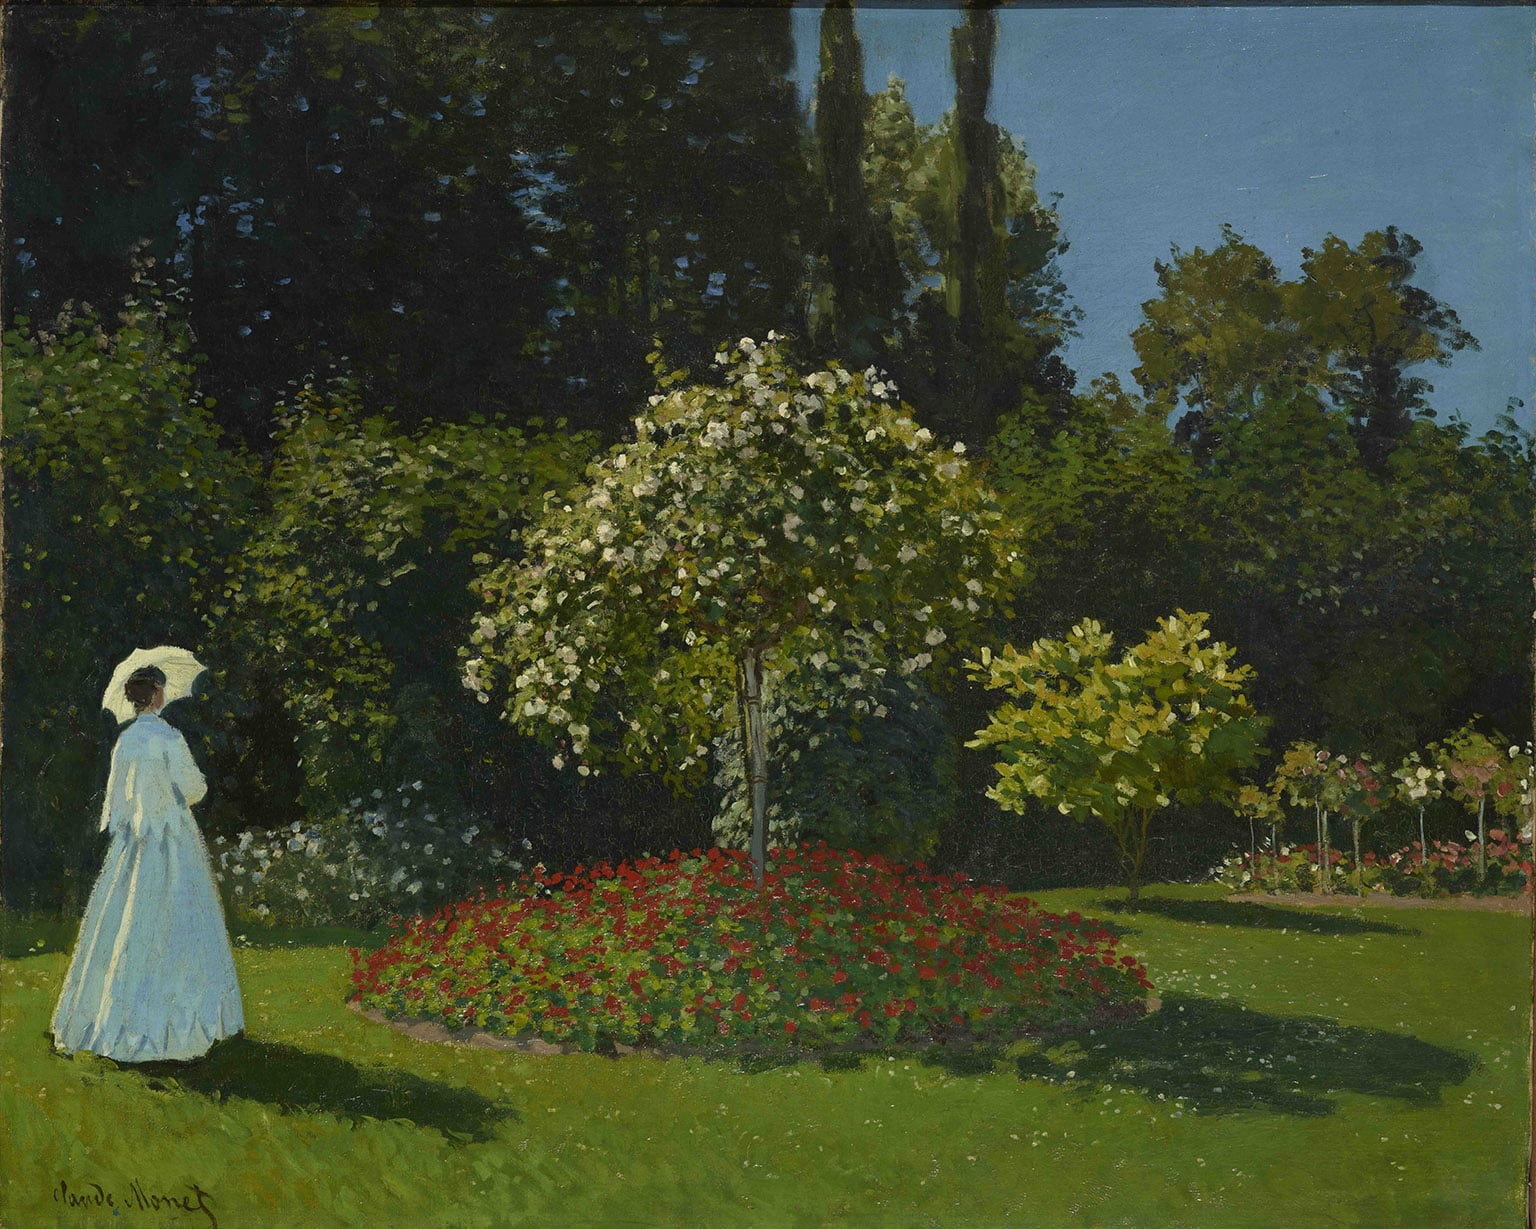 5. Painting the Modern Garden: Monet to Matisse, Royal Academy, Reduced price with a National Art Pass - Claude Monet, Lady in the Garden, 1867. Photo © The State Hermitage Museum. Photography: Vladimir Terebenin